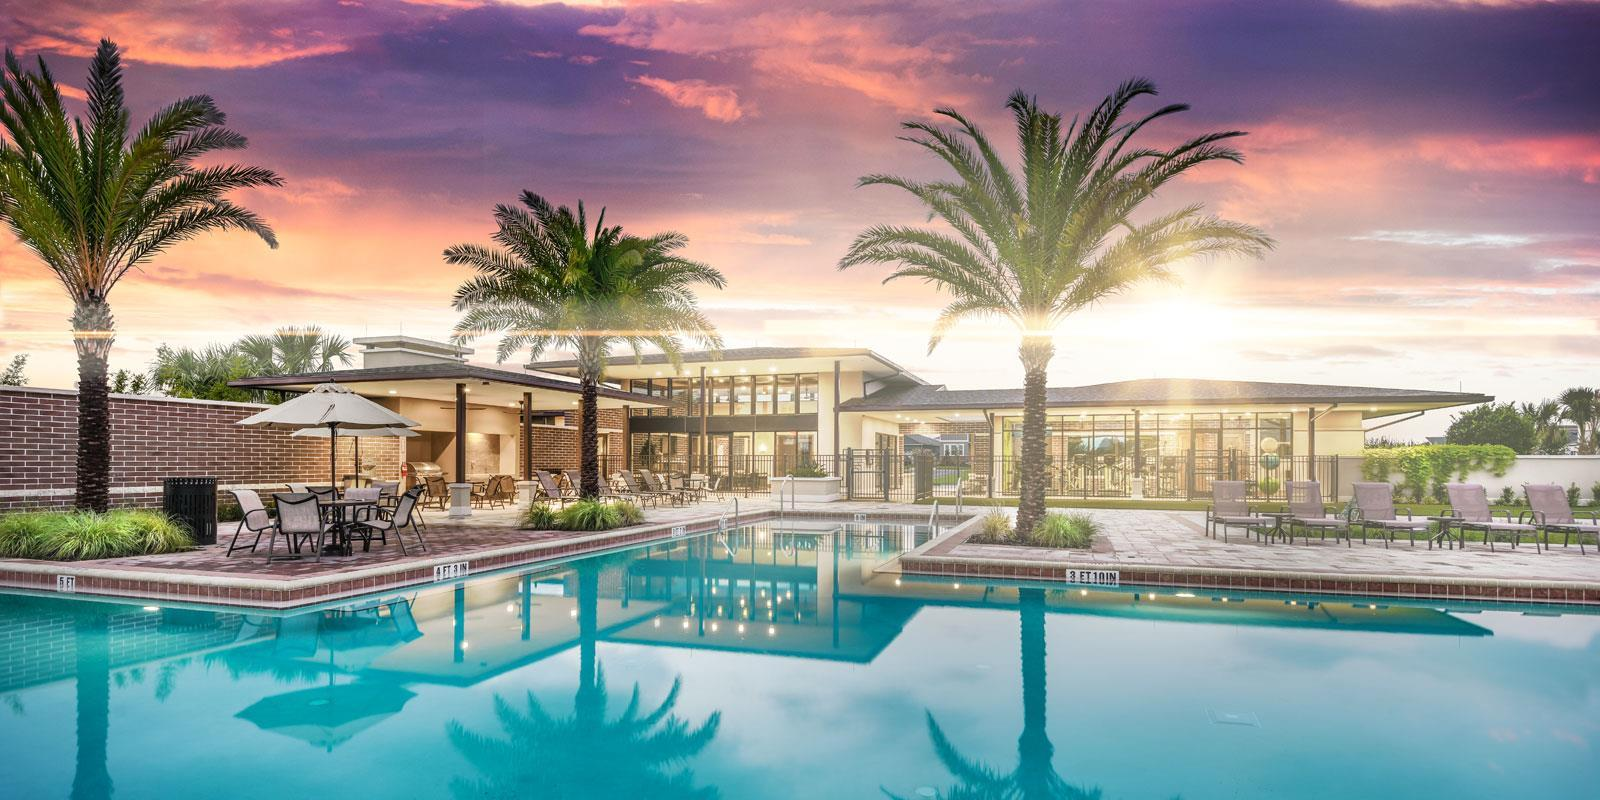 Winter Garden - Hawksmoor:Hawksmoor by Mattamy Homes in Winter Garden, FL: Sparkling Pool at Dusk